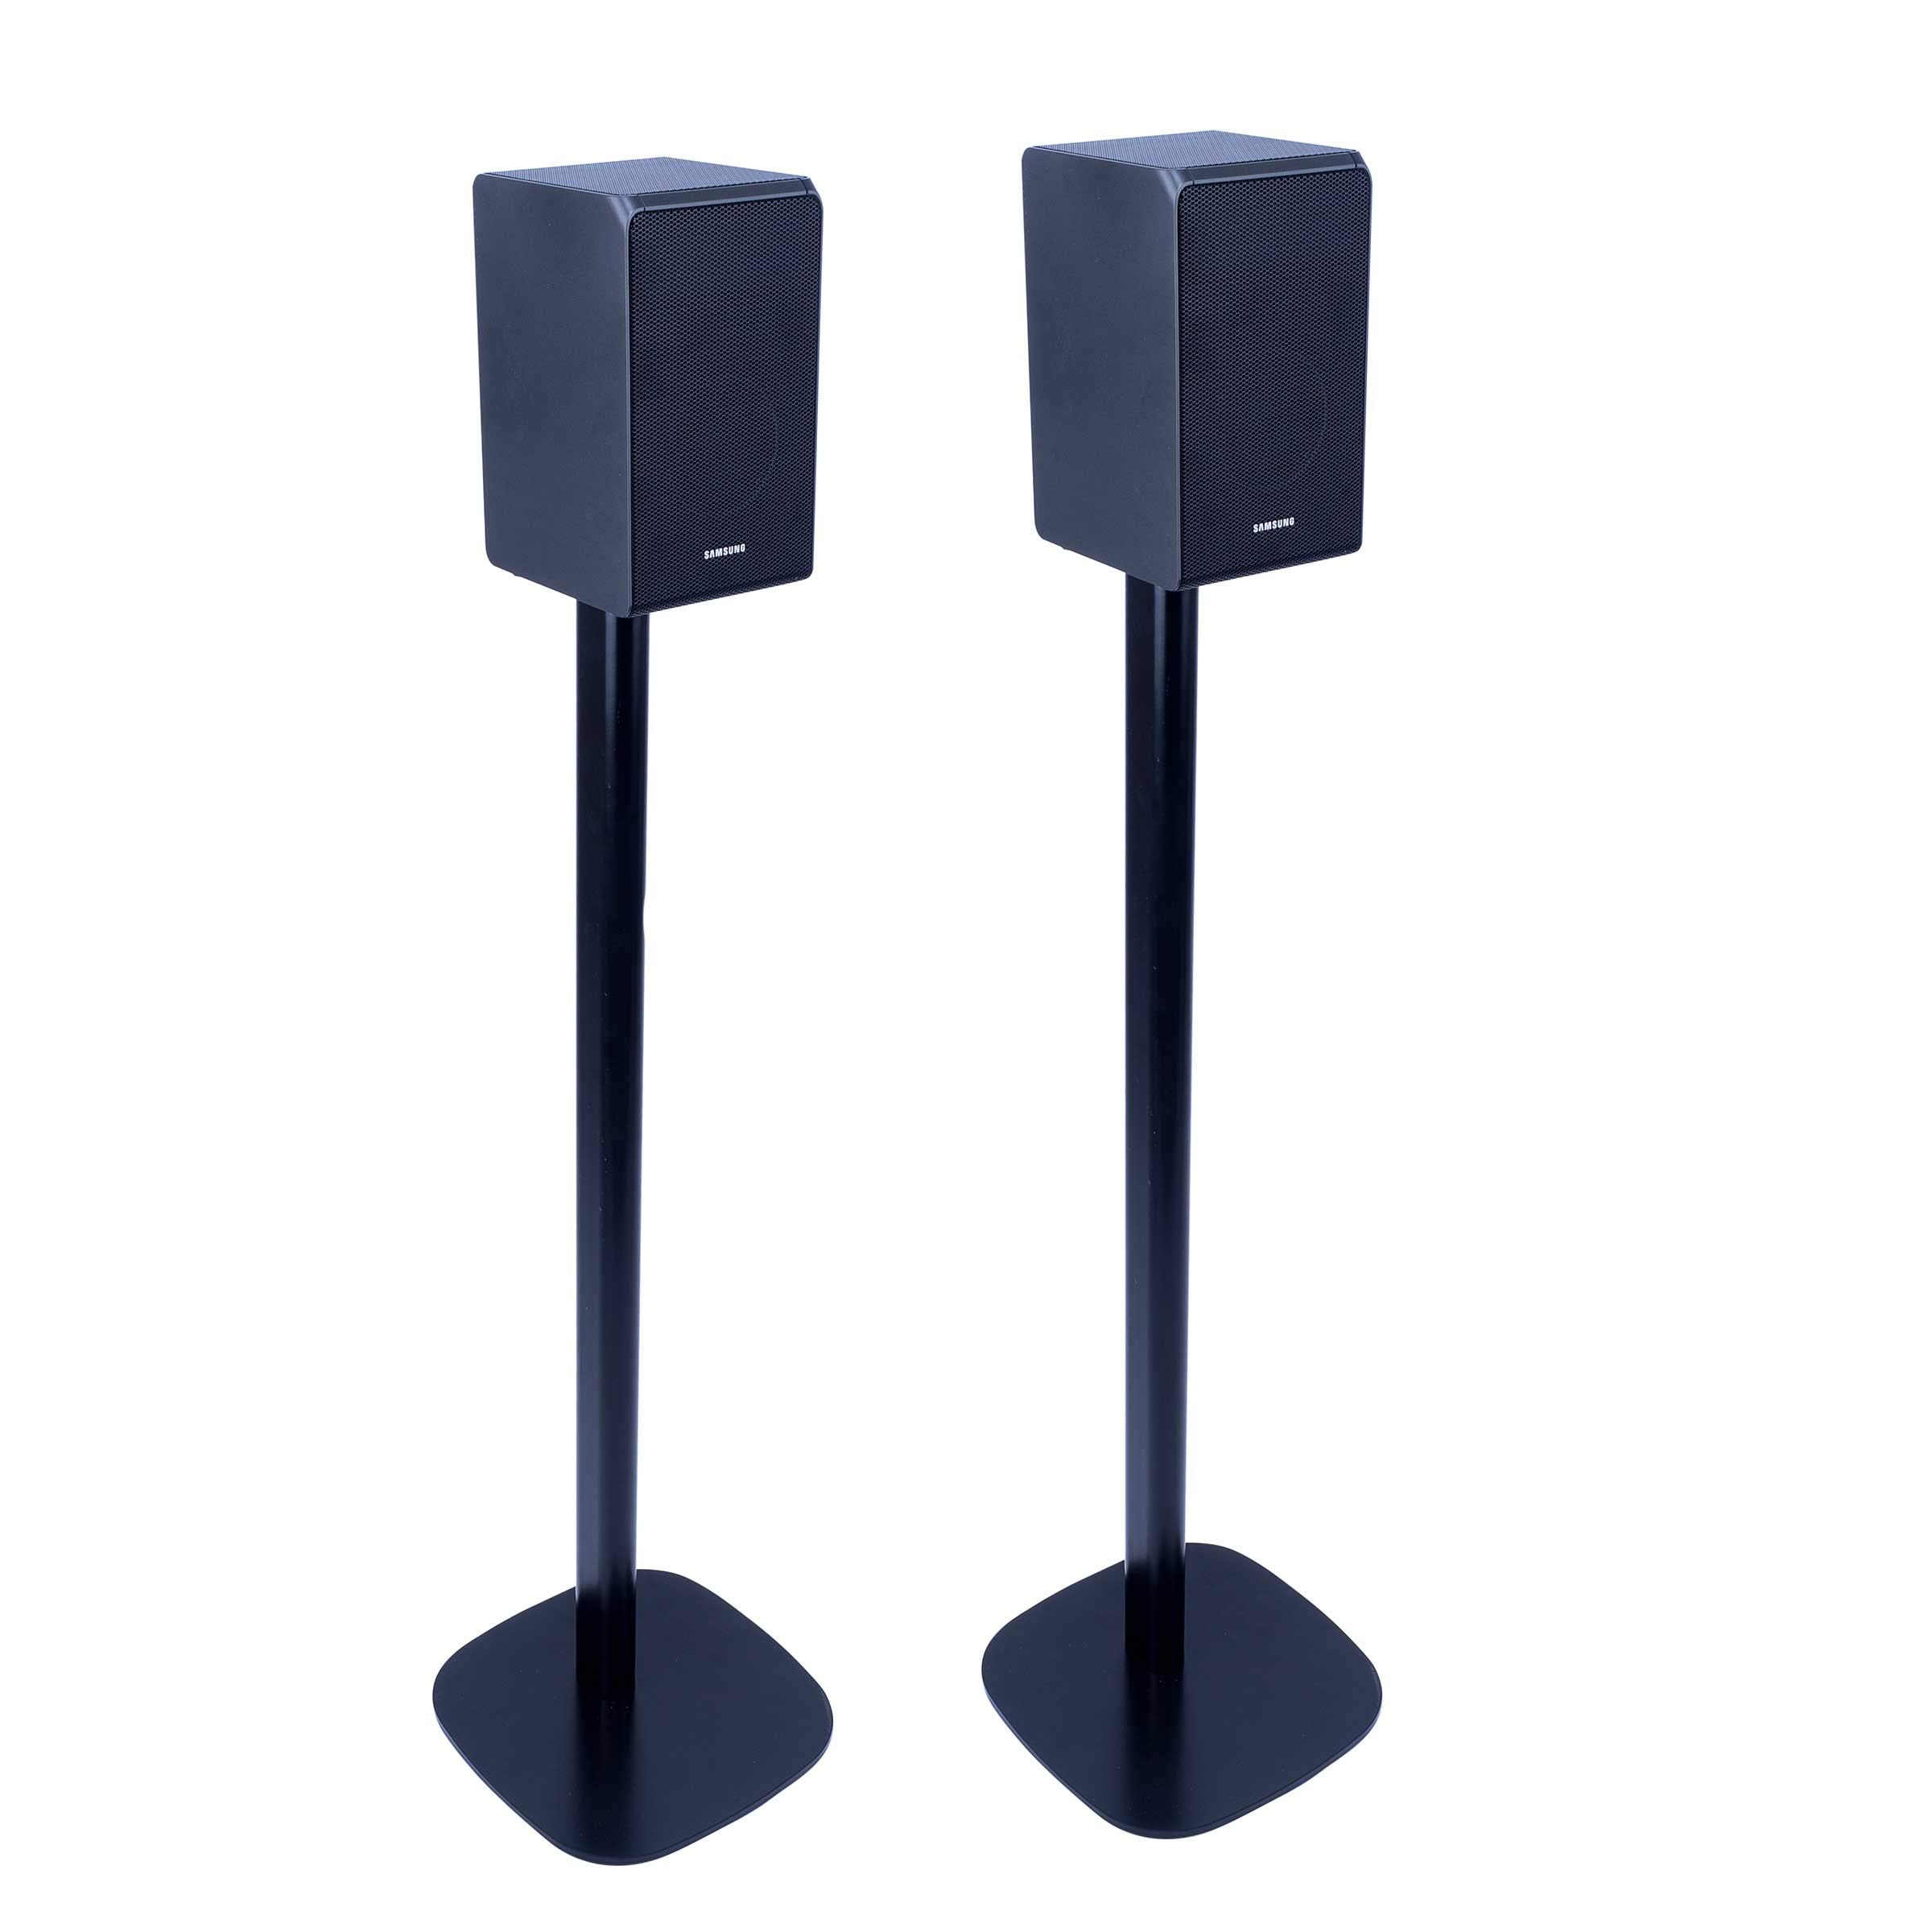 Vebos Floor Stand HW-N950 Black Set - Compatible with Samsung HW-Q90R, Samsung HW-N950 and Samsung HW-K950 by Vebos